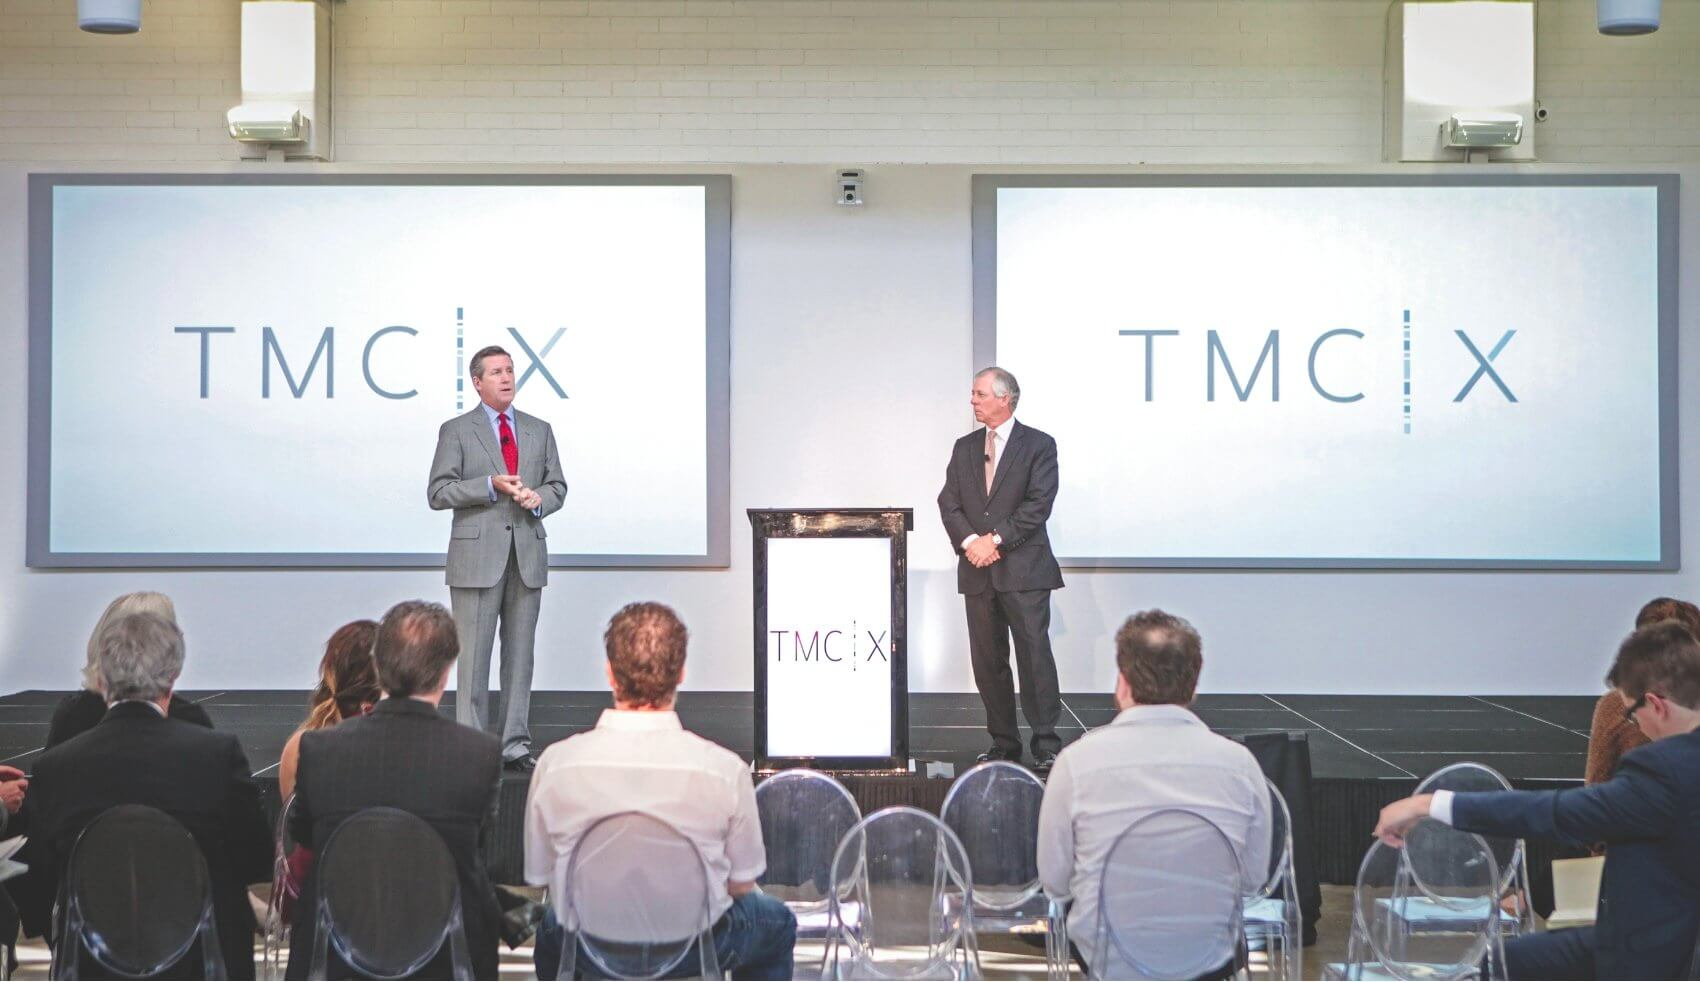 Texas Medical Center Chief Executive Officer and President Robert C. Robbins, M.D., and Chief Strategy and Operating Officer and Executive Vice President William F. McKeon speak to visitors during the grand opening of the TMCx.